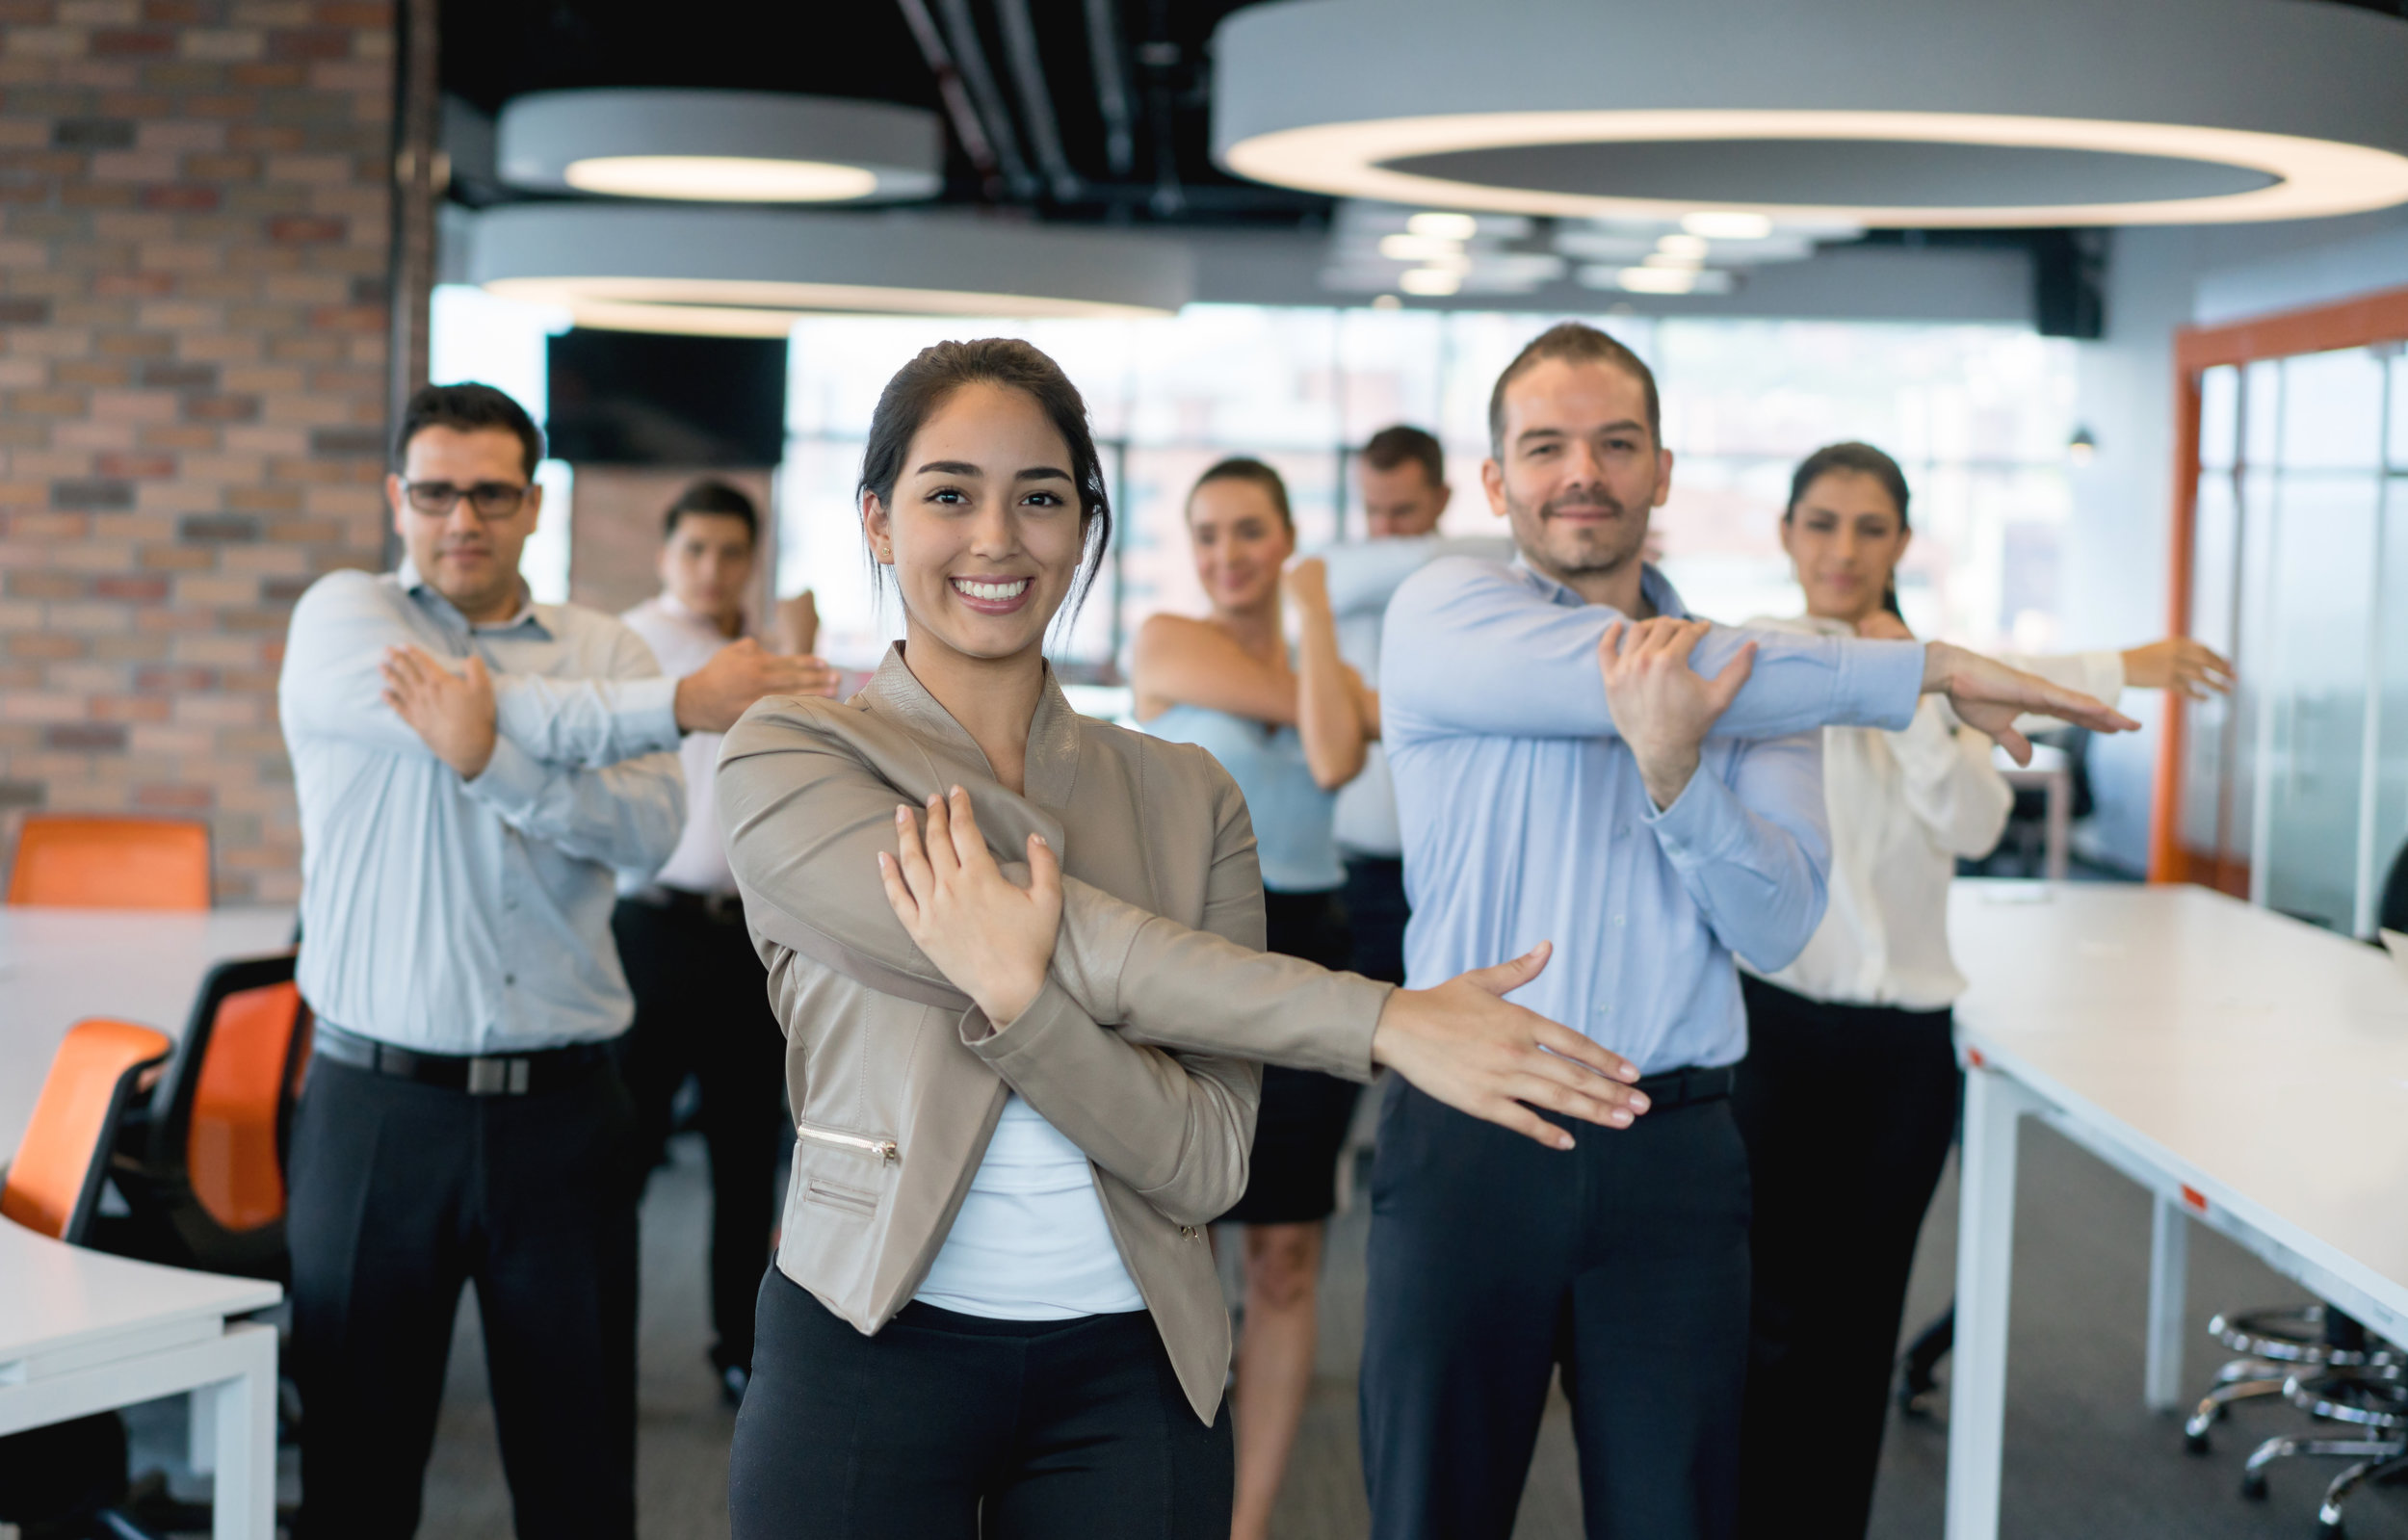 Business-people-stretching-at-the-office-878692208_6985x4467.jpeg